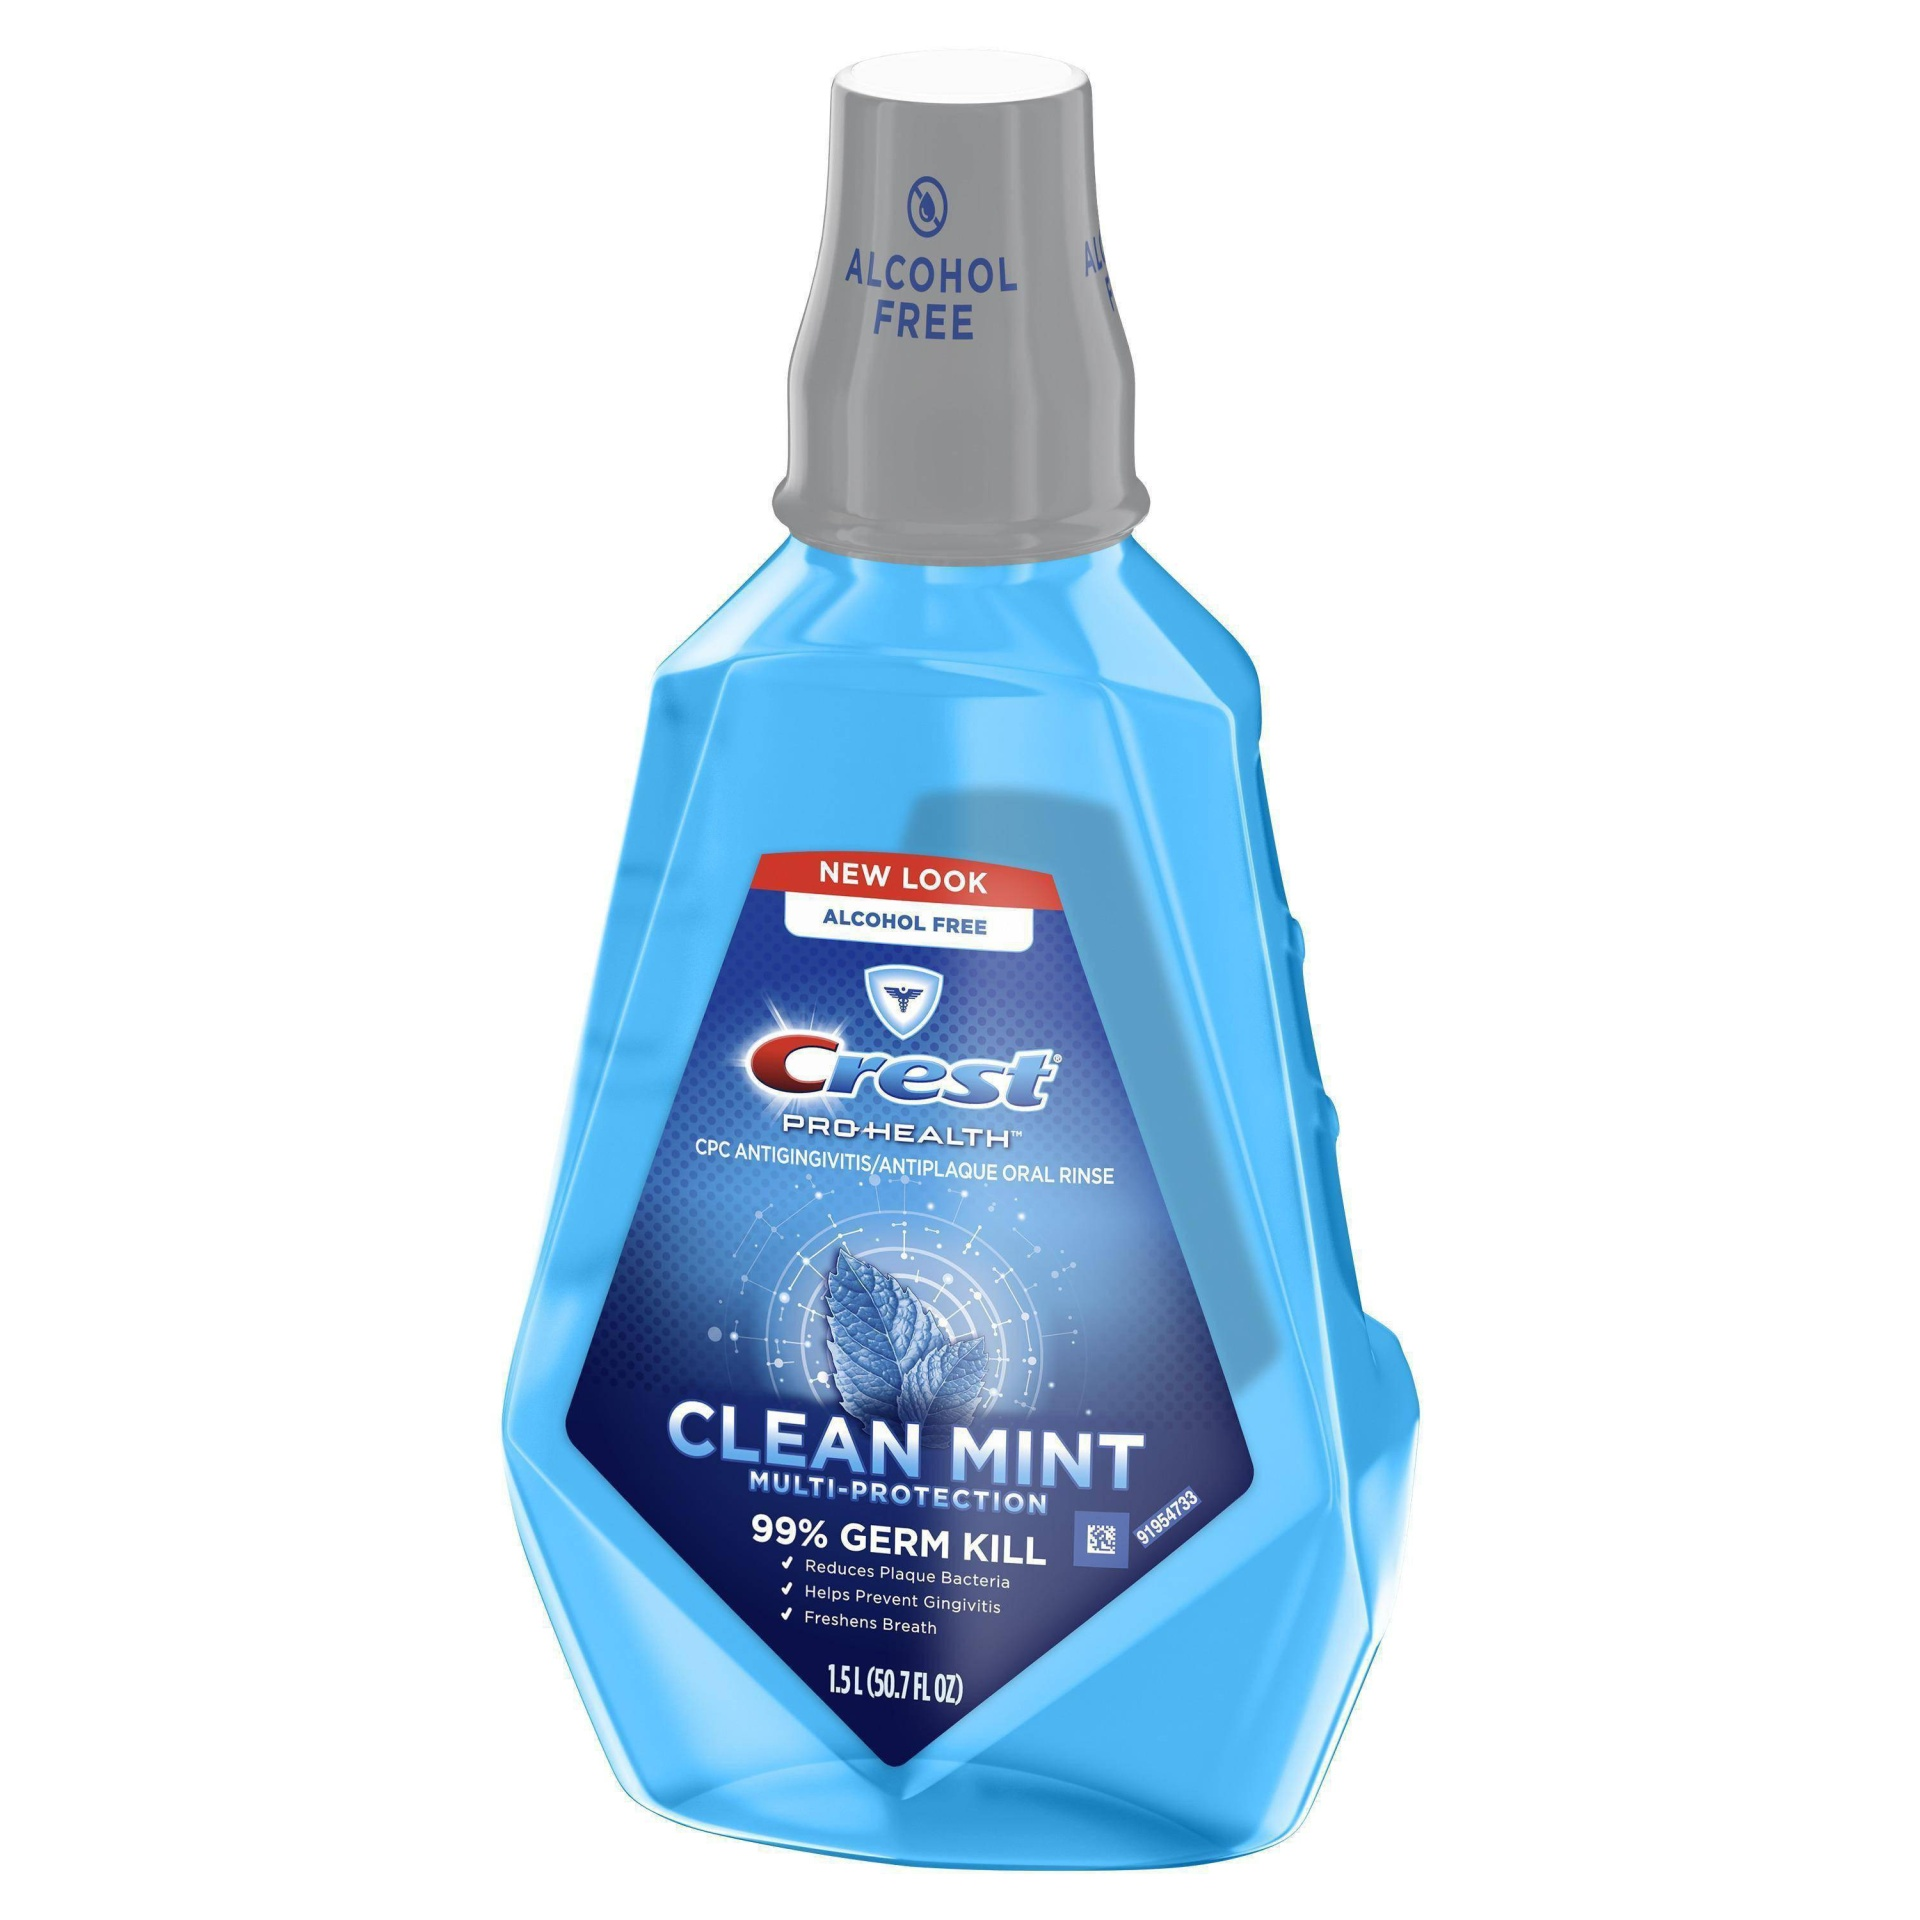 slide 1 of 3, Crest Pro-Health Clean Mint Multi-Protection CPC Antigingivitis Antiplaque Mouthwash,